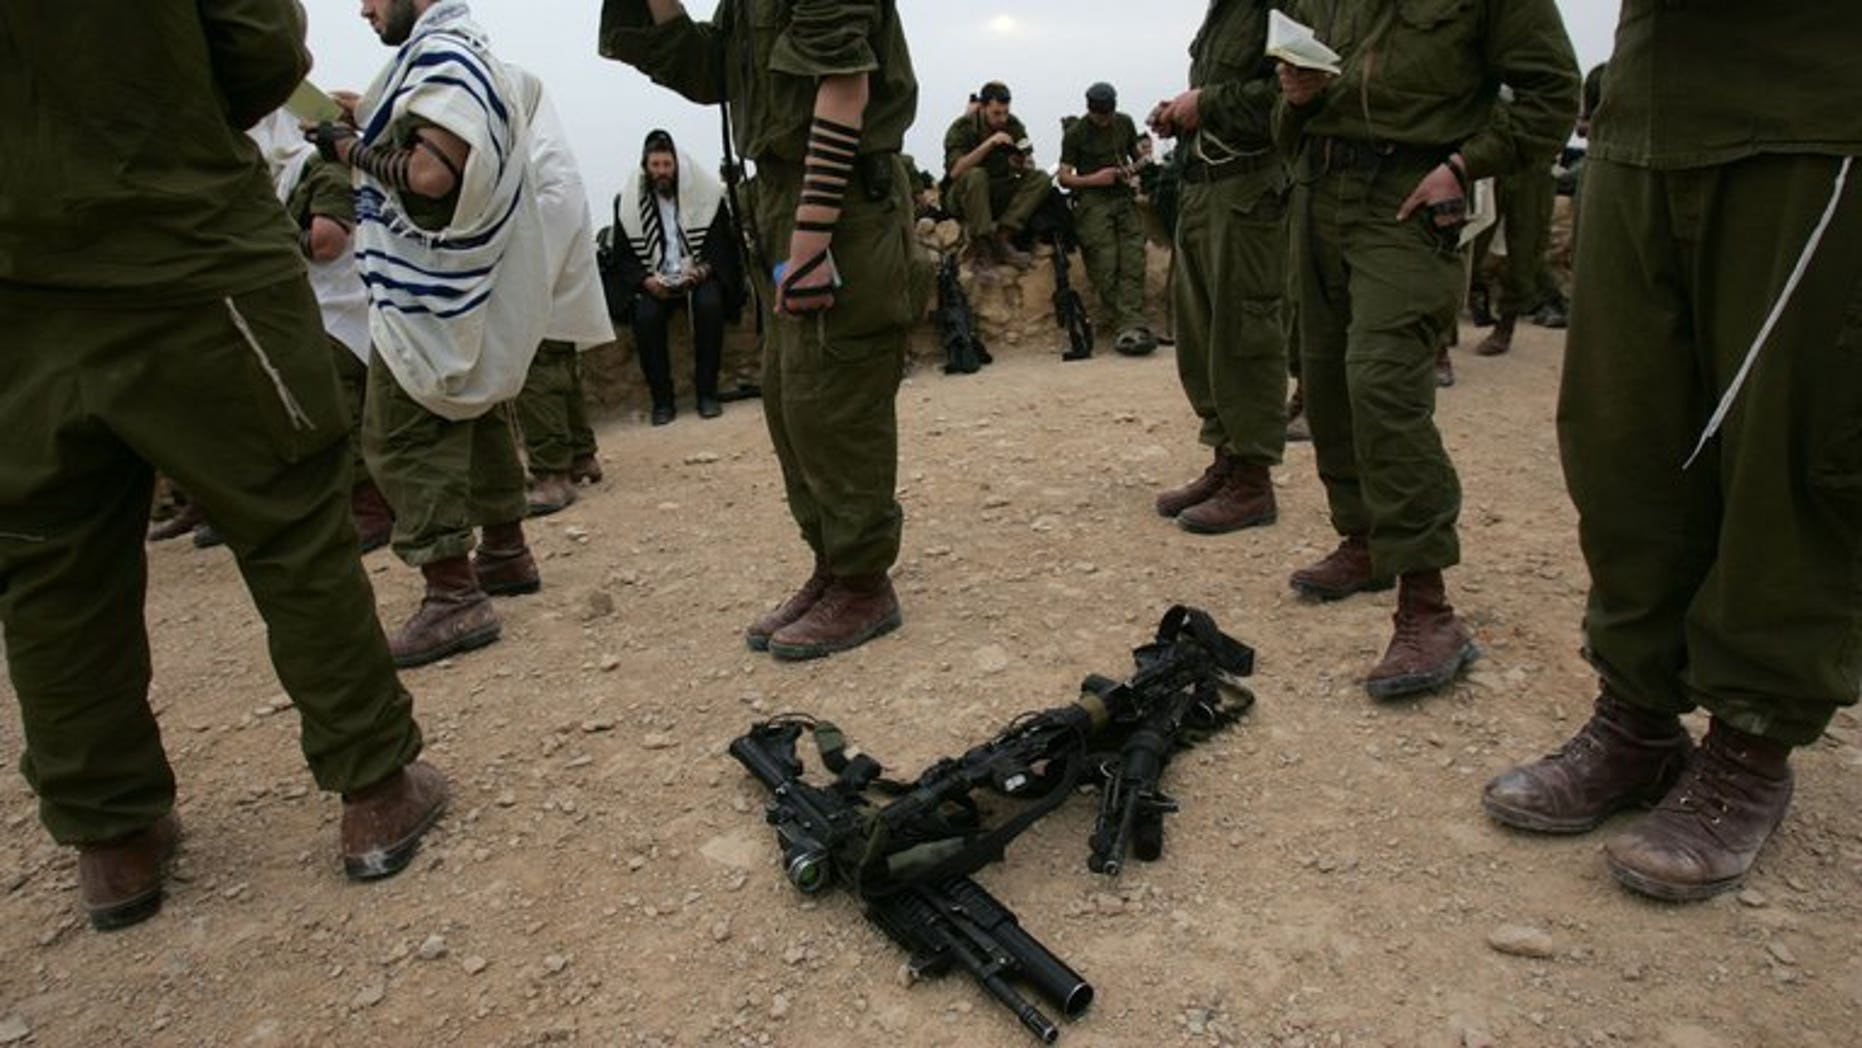 Israeli soldiers from an Ultra Orthodox battalion pray on the top of the ancient fortress of Masada in the Judean desert on March 23, 2007. Israeli police on Tuesday rescued an ultra-Orthodox soldier who was attacked by a group of his coreligionists in Jerusalem's Mea Shearim neighbourhood, a spokesman said.